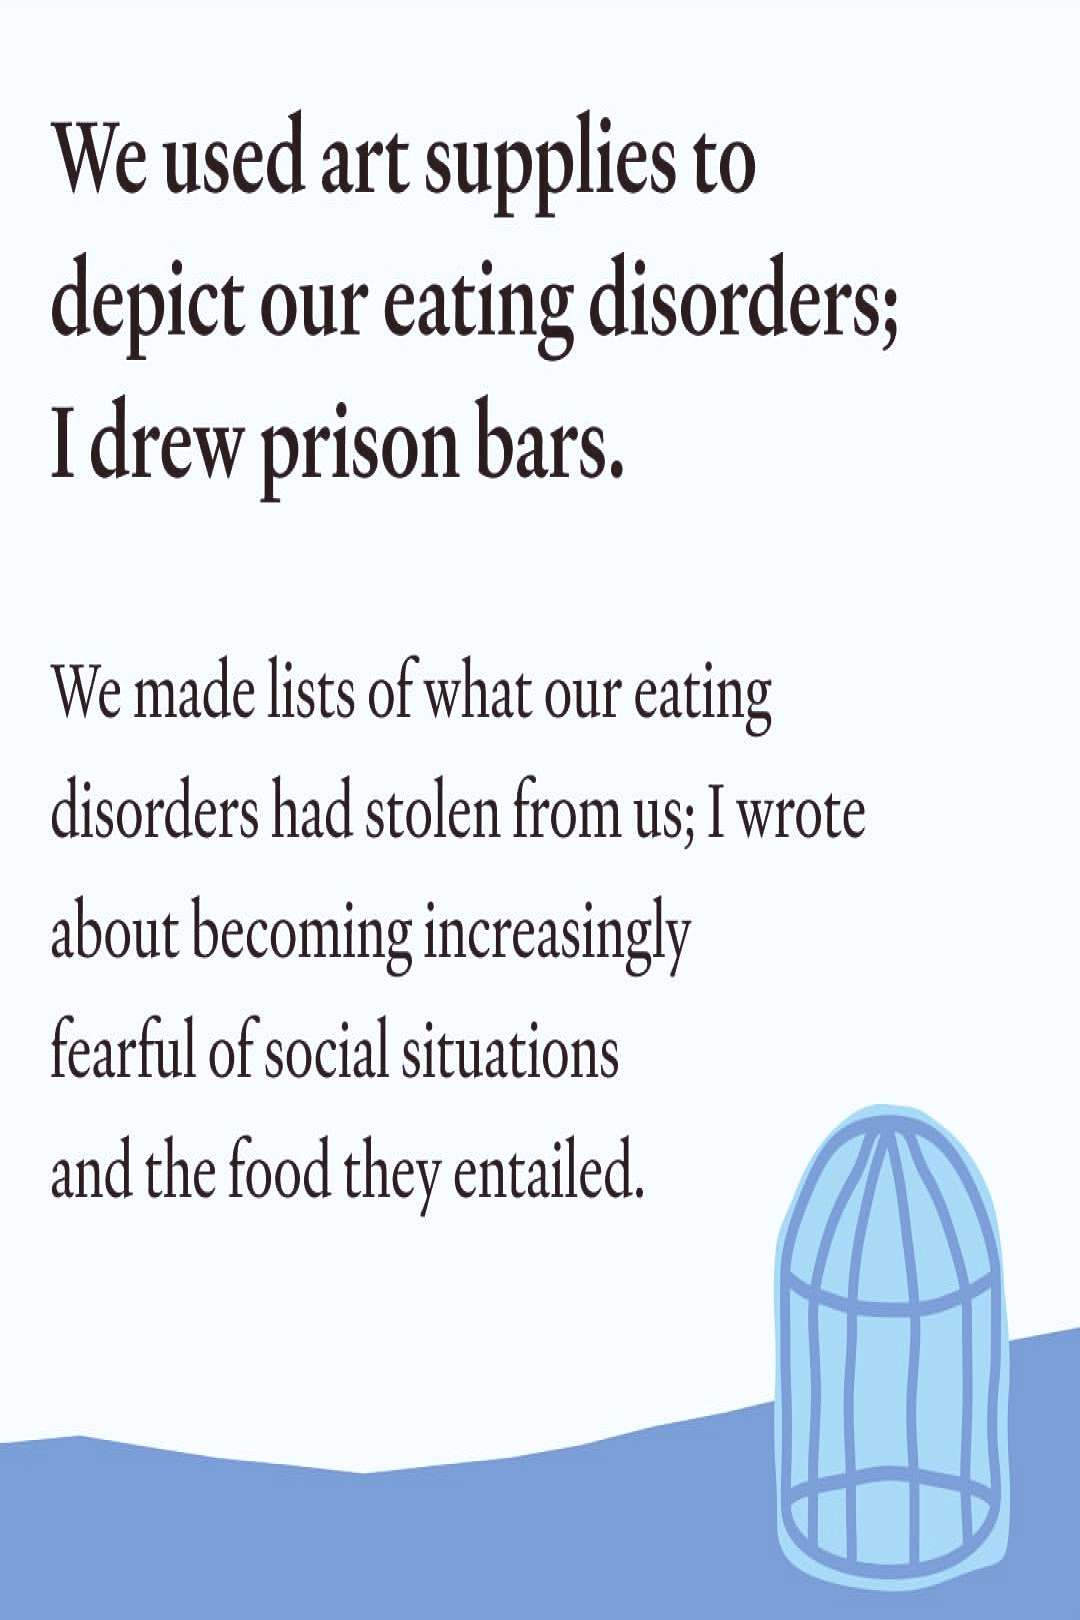 This week is #NationalEatingDisorderAwarenessWeek. Together with